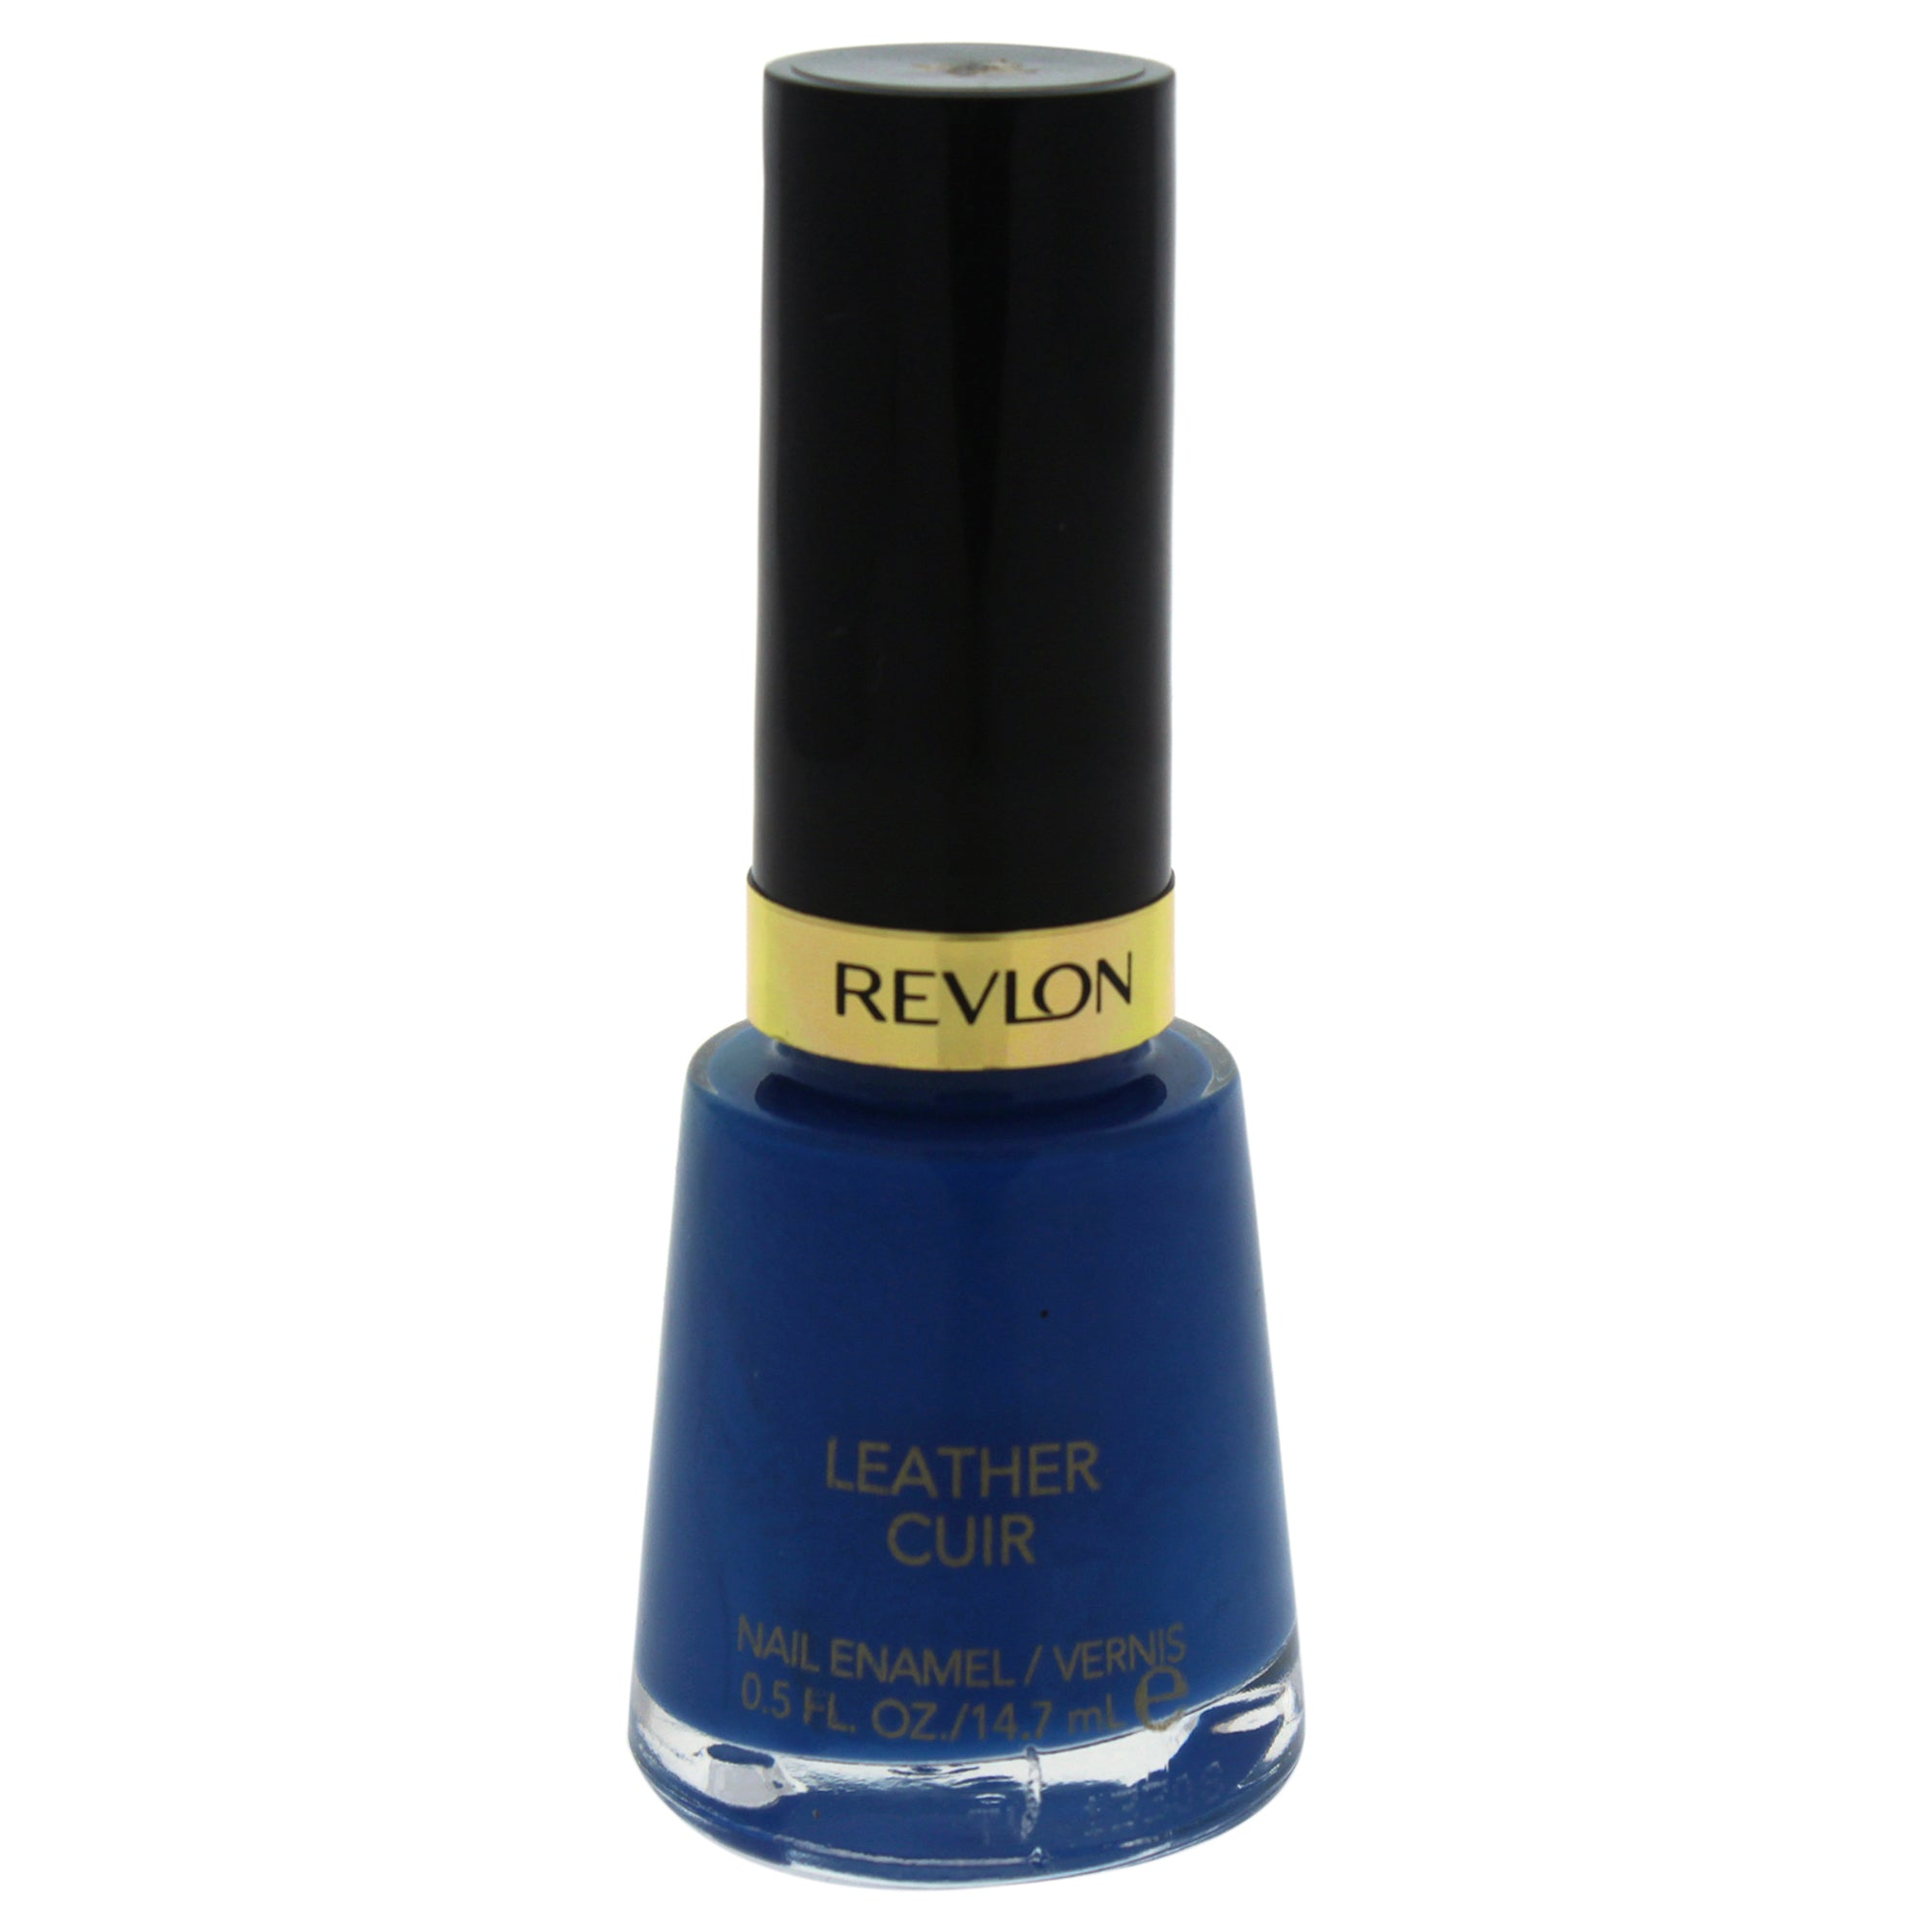 Revlon Leather Cuir Nail Enamel